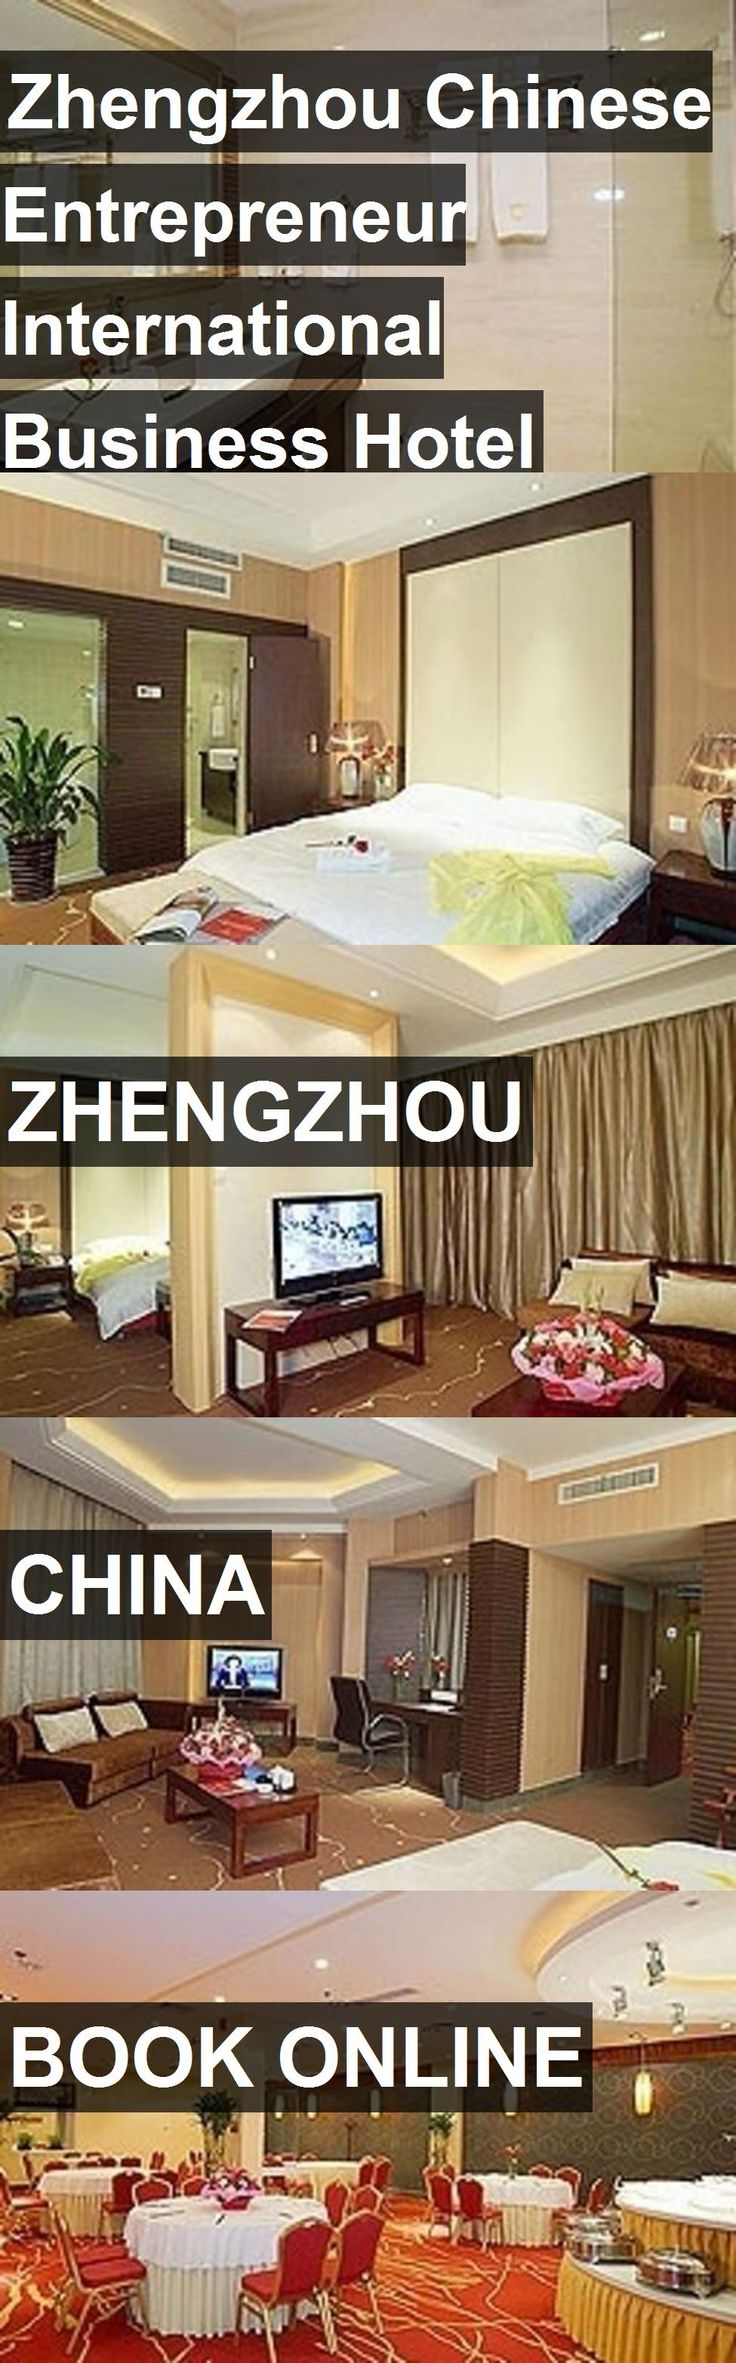 Zhengzhou Chinese Entrepreneur International Business Hotel in Zhengzhou, China. For more information, photos, reviews and best prices please follow the link. #China #Zhengzhou #travel #vacation #hotel